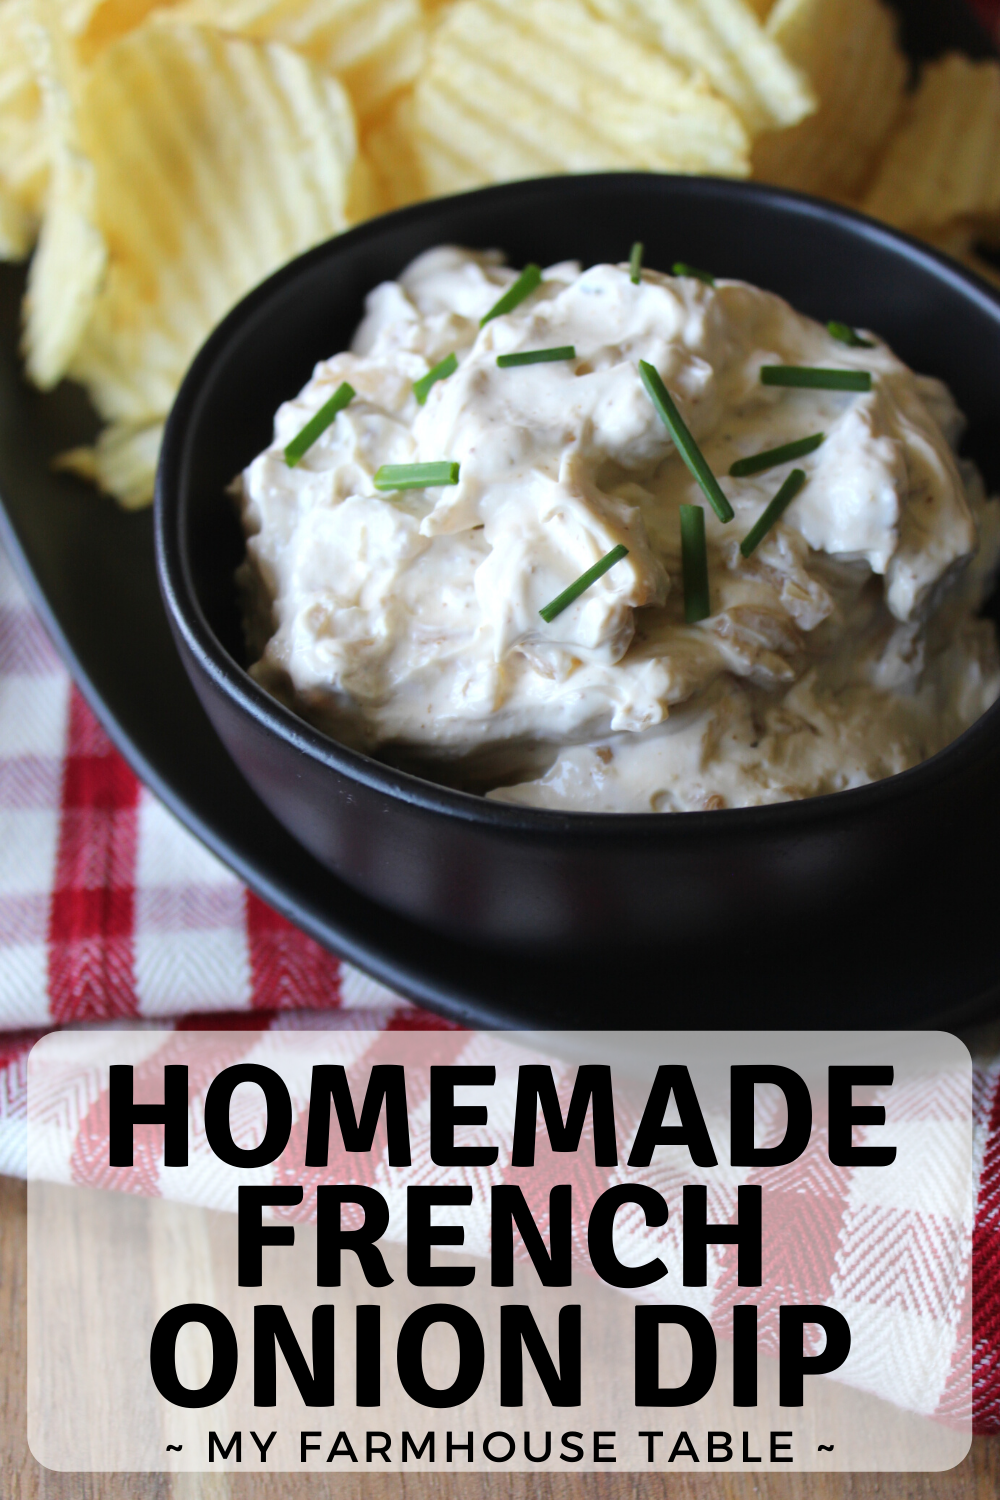 Homemade French Onion Dip Recipe Chip and Vegetable Dip Simple and Easy Football Party Food Appetizer Ideas My Farmhouse Table